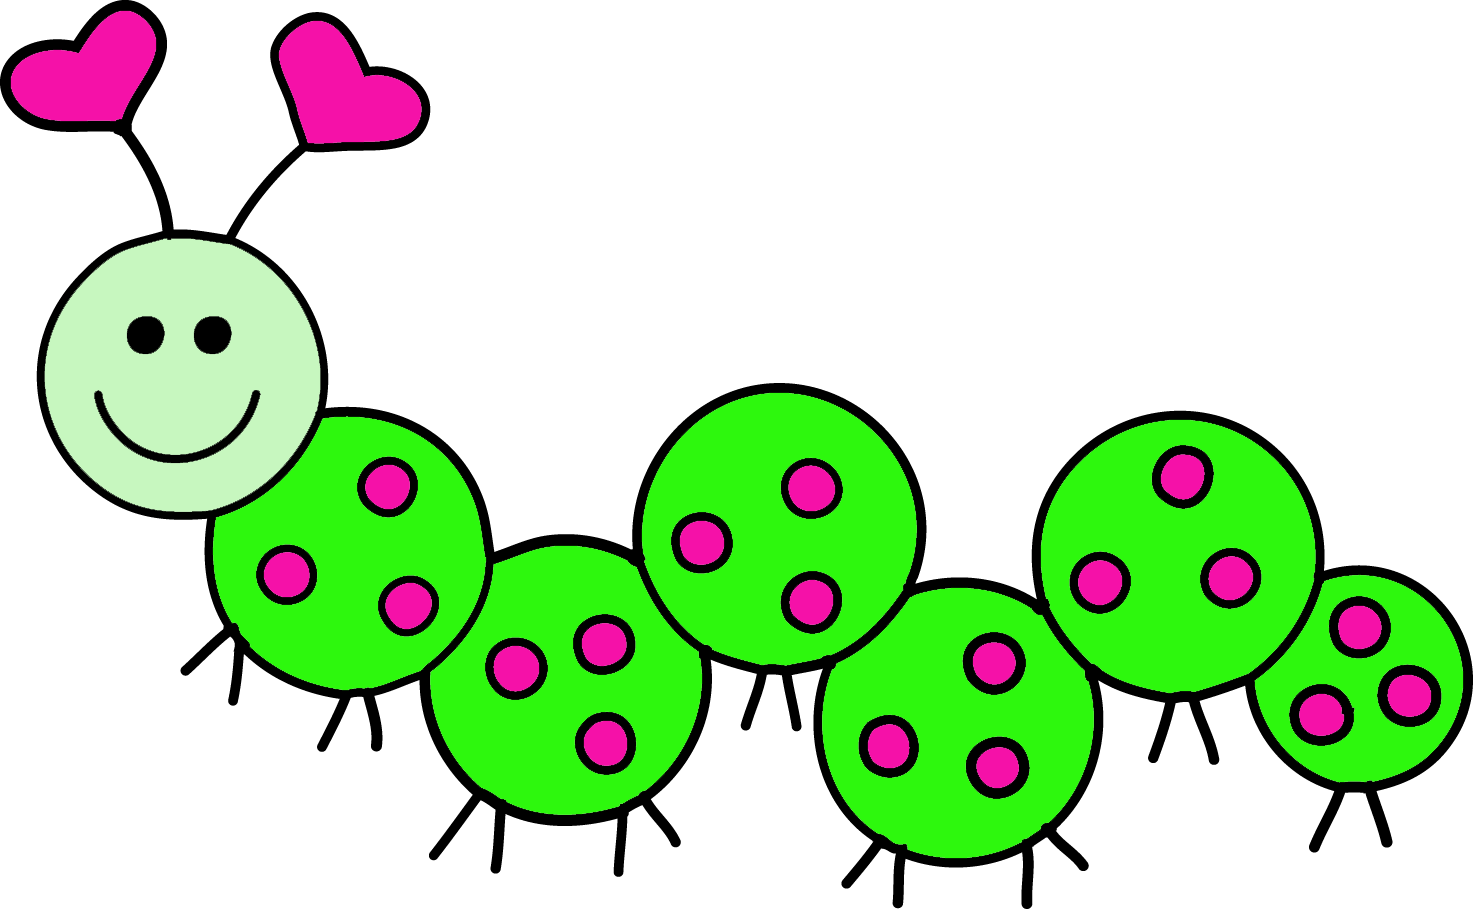 Caterpillar clipart #8